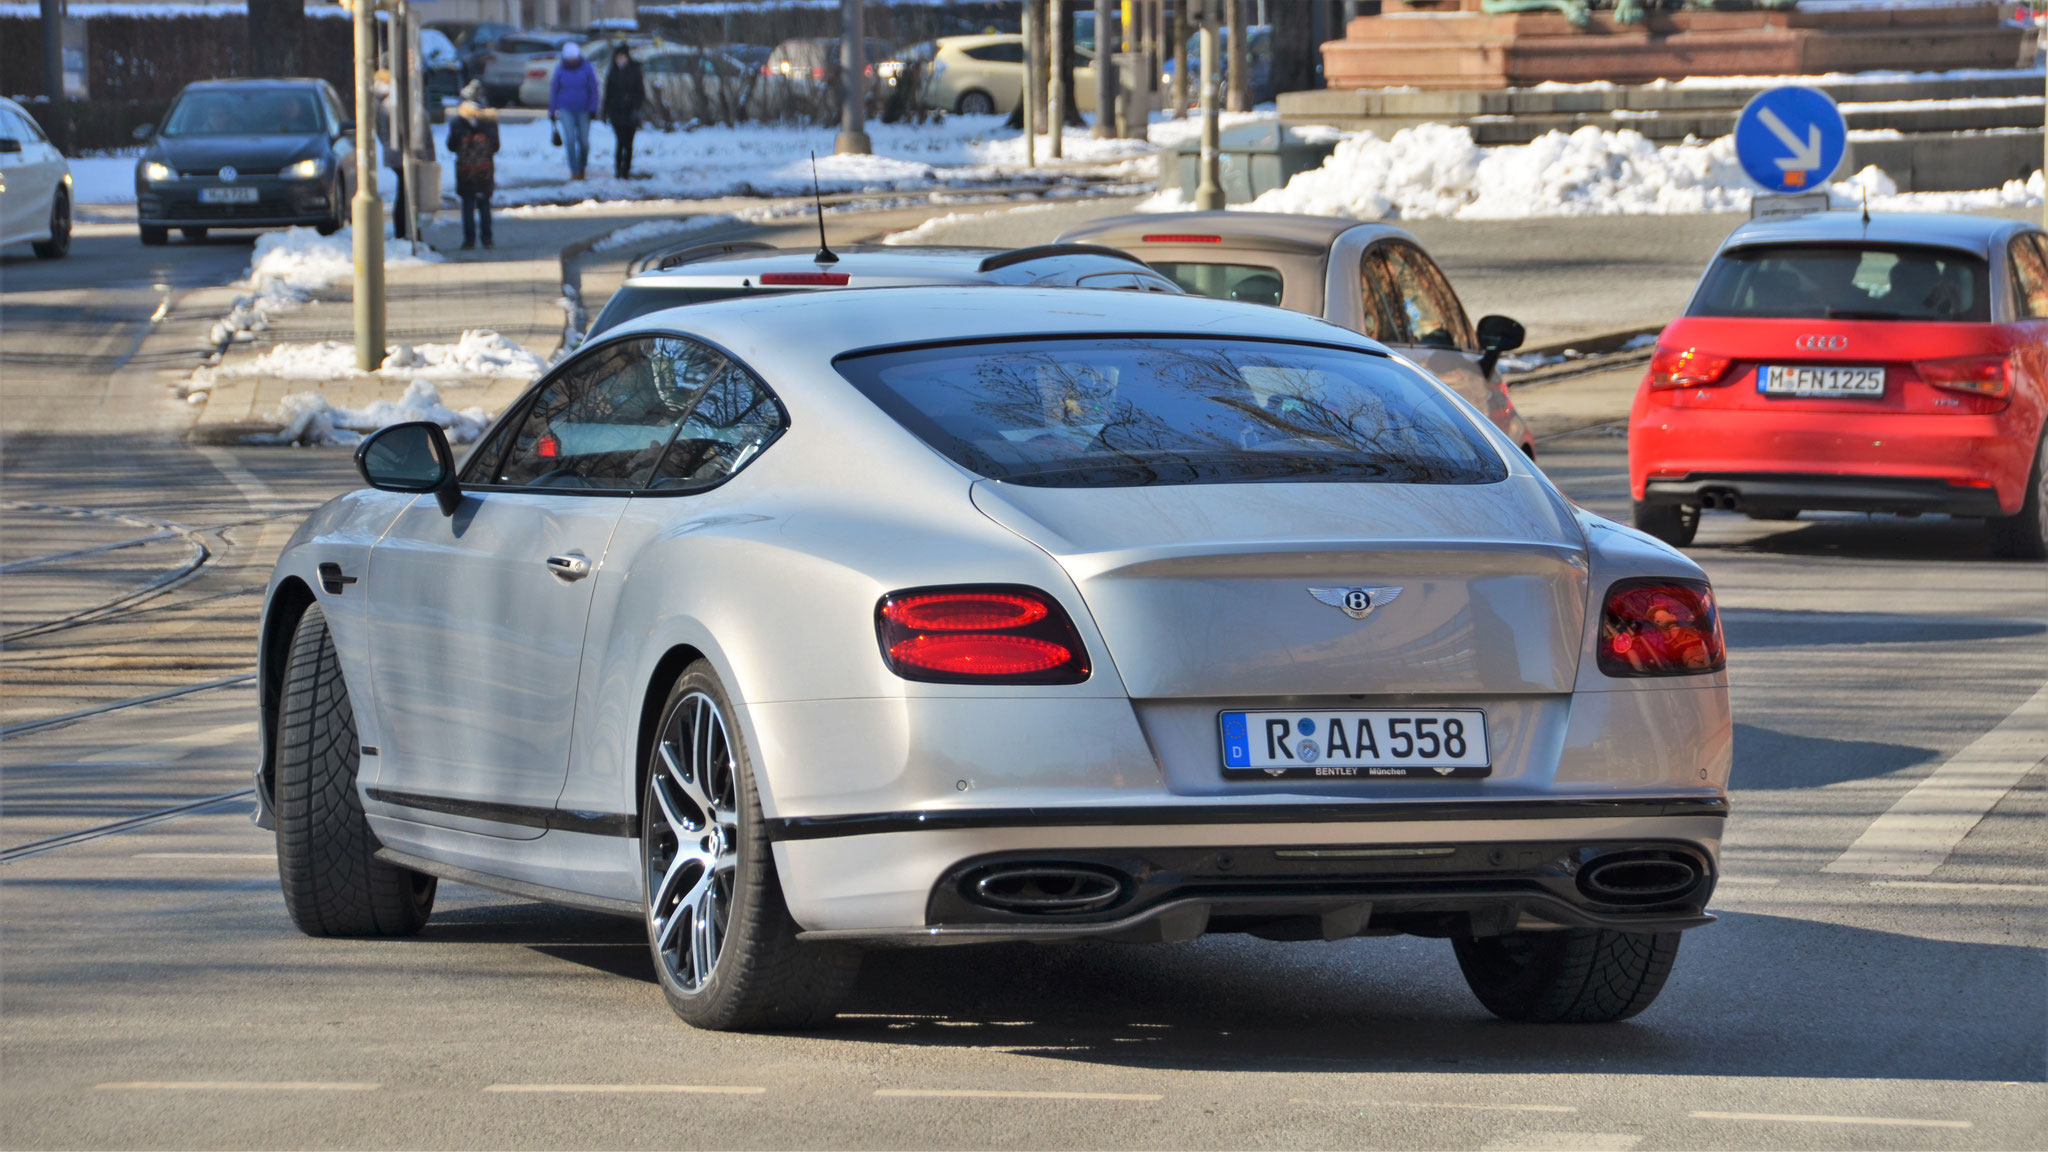 Bentley Continental GT Supersports - R-AA-558